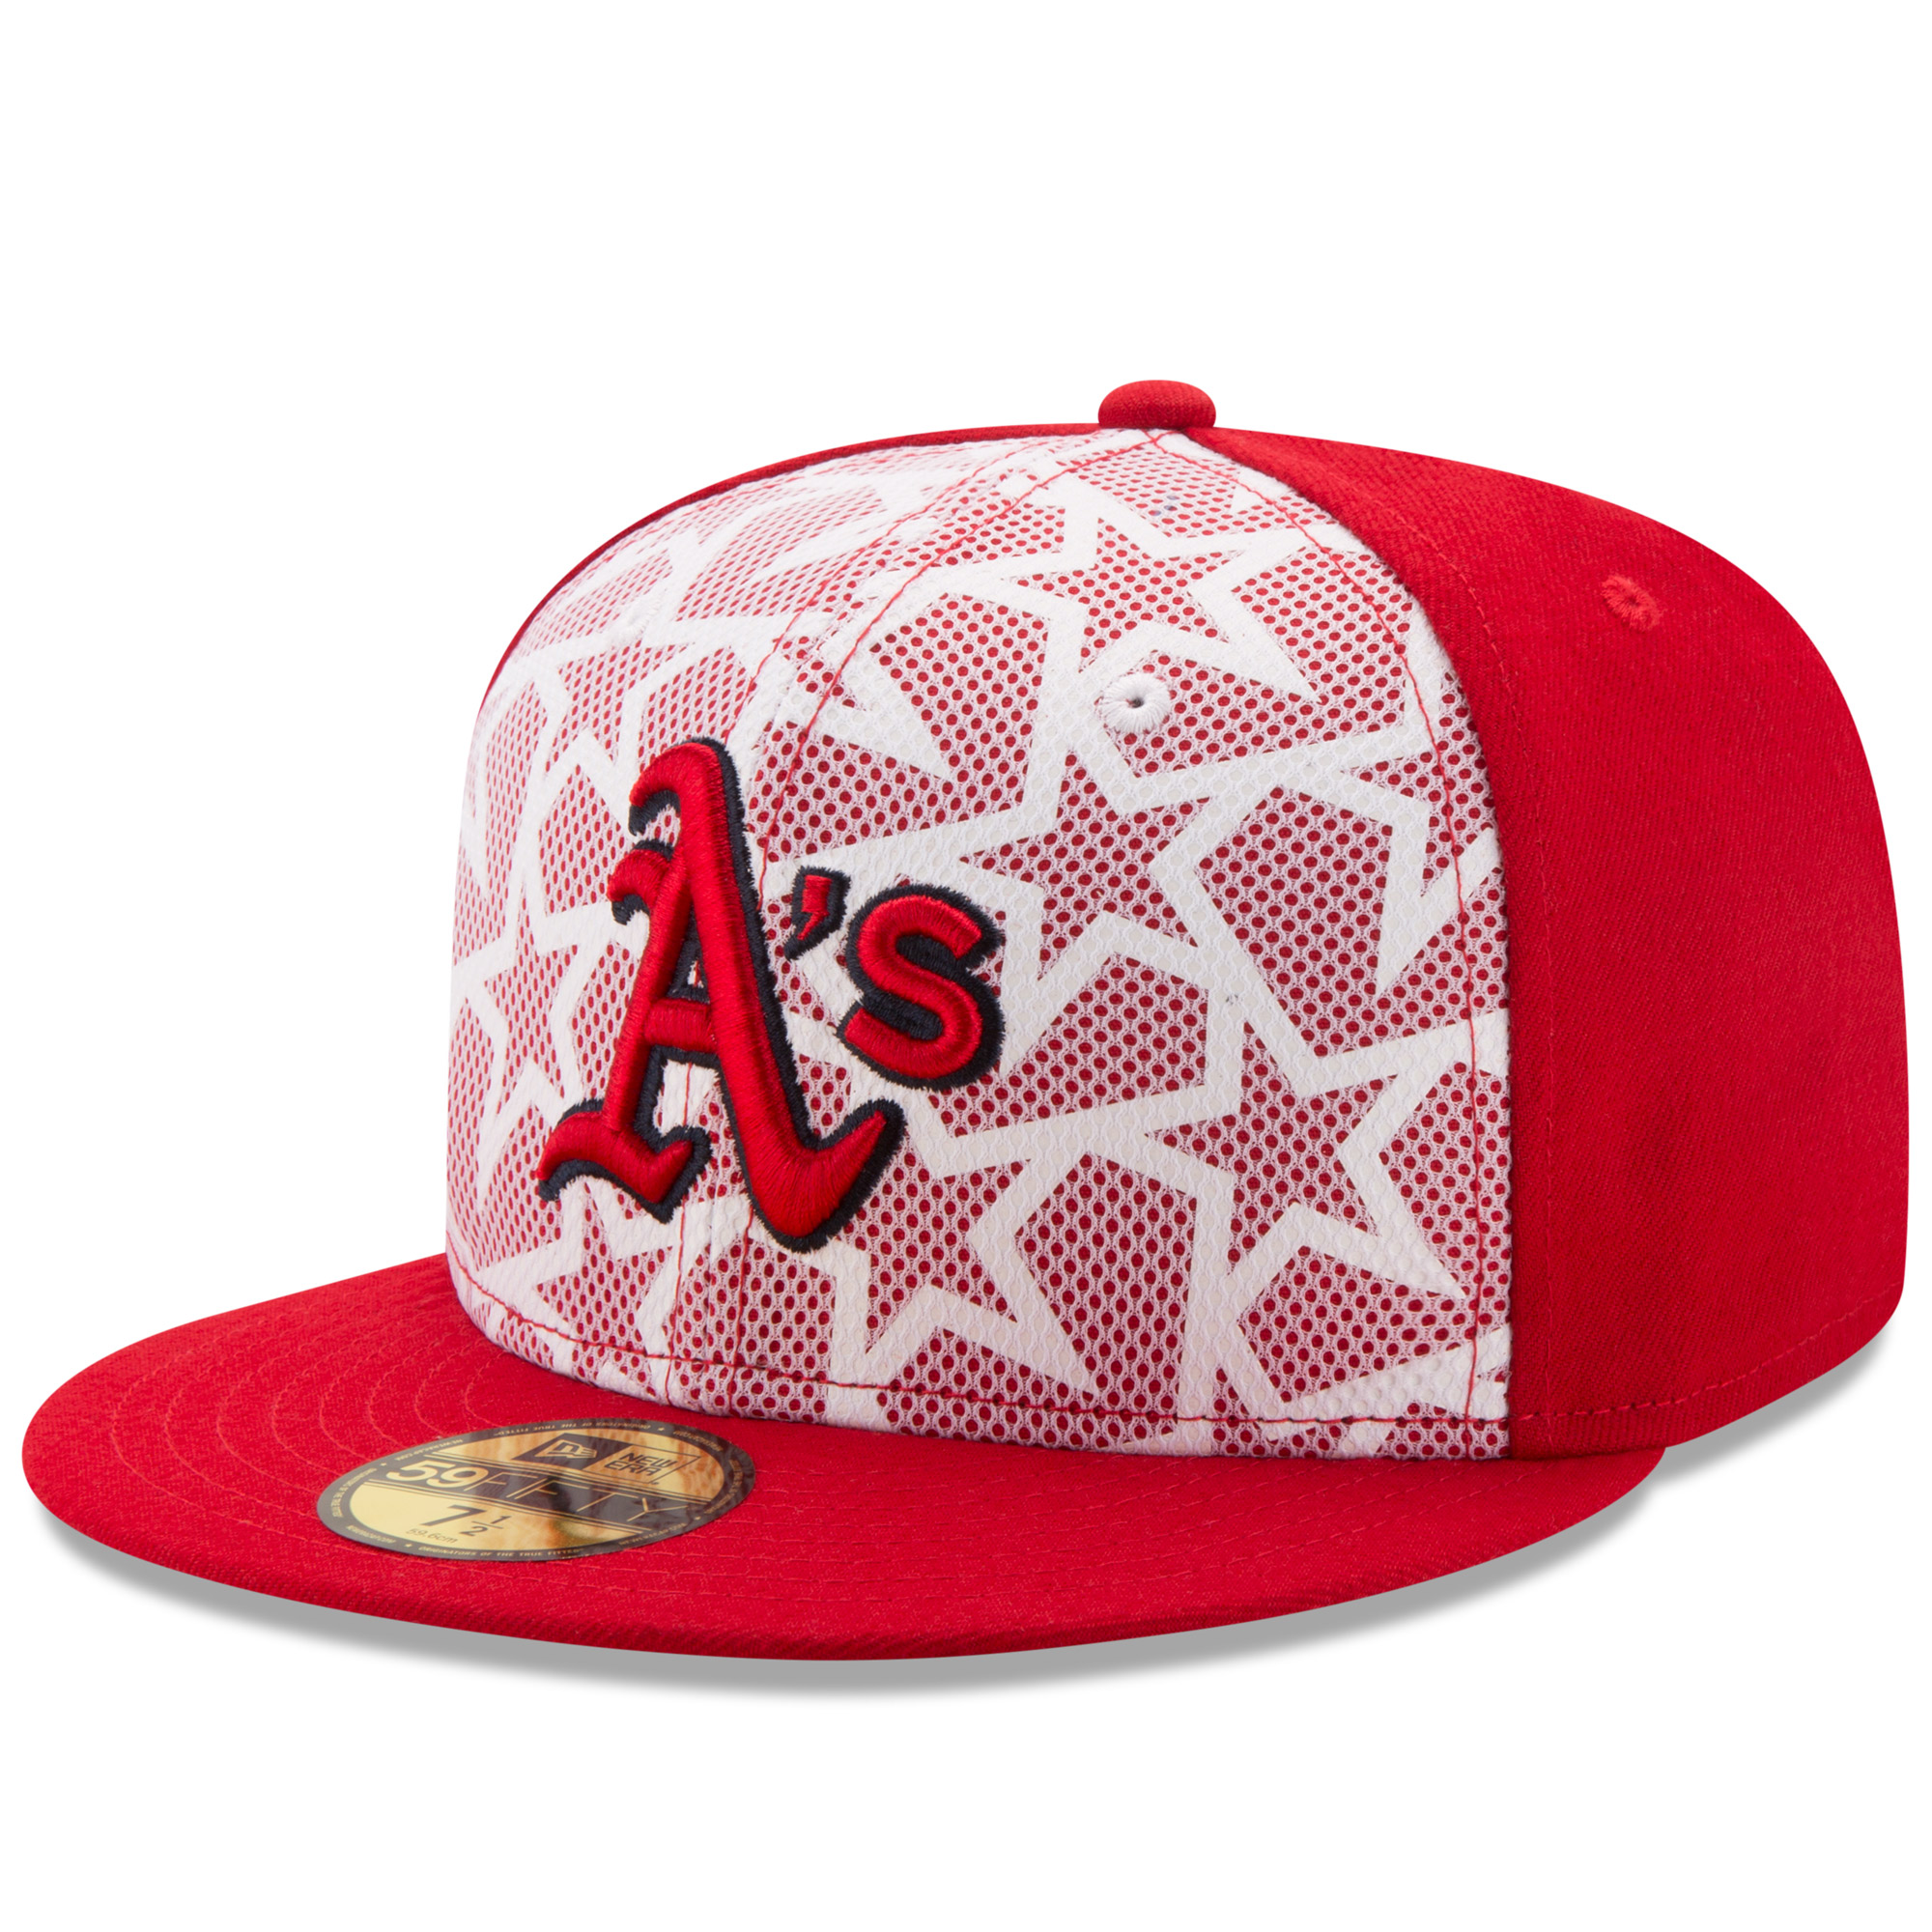 Oakland Athletics New Era Stars & Stripes 59FIFTY Fitted Hat - White/Red